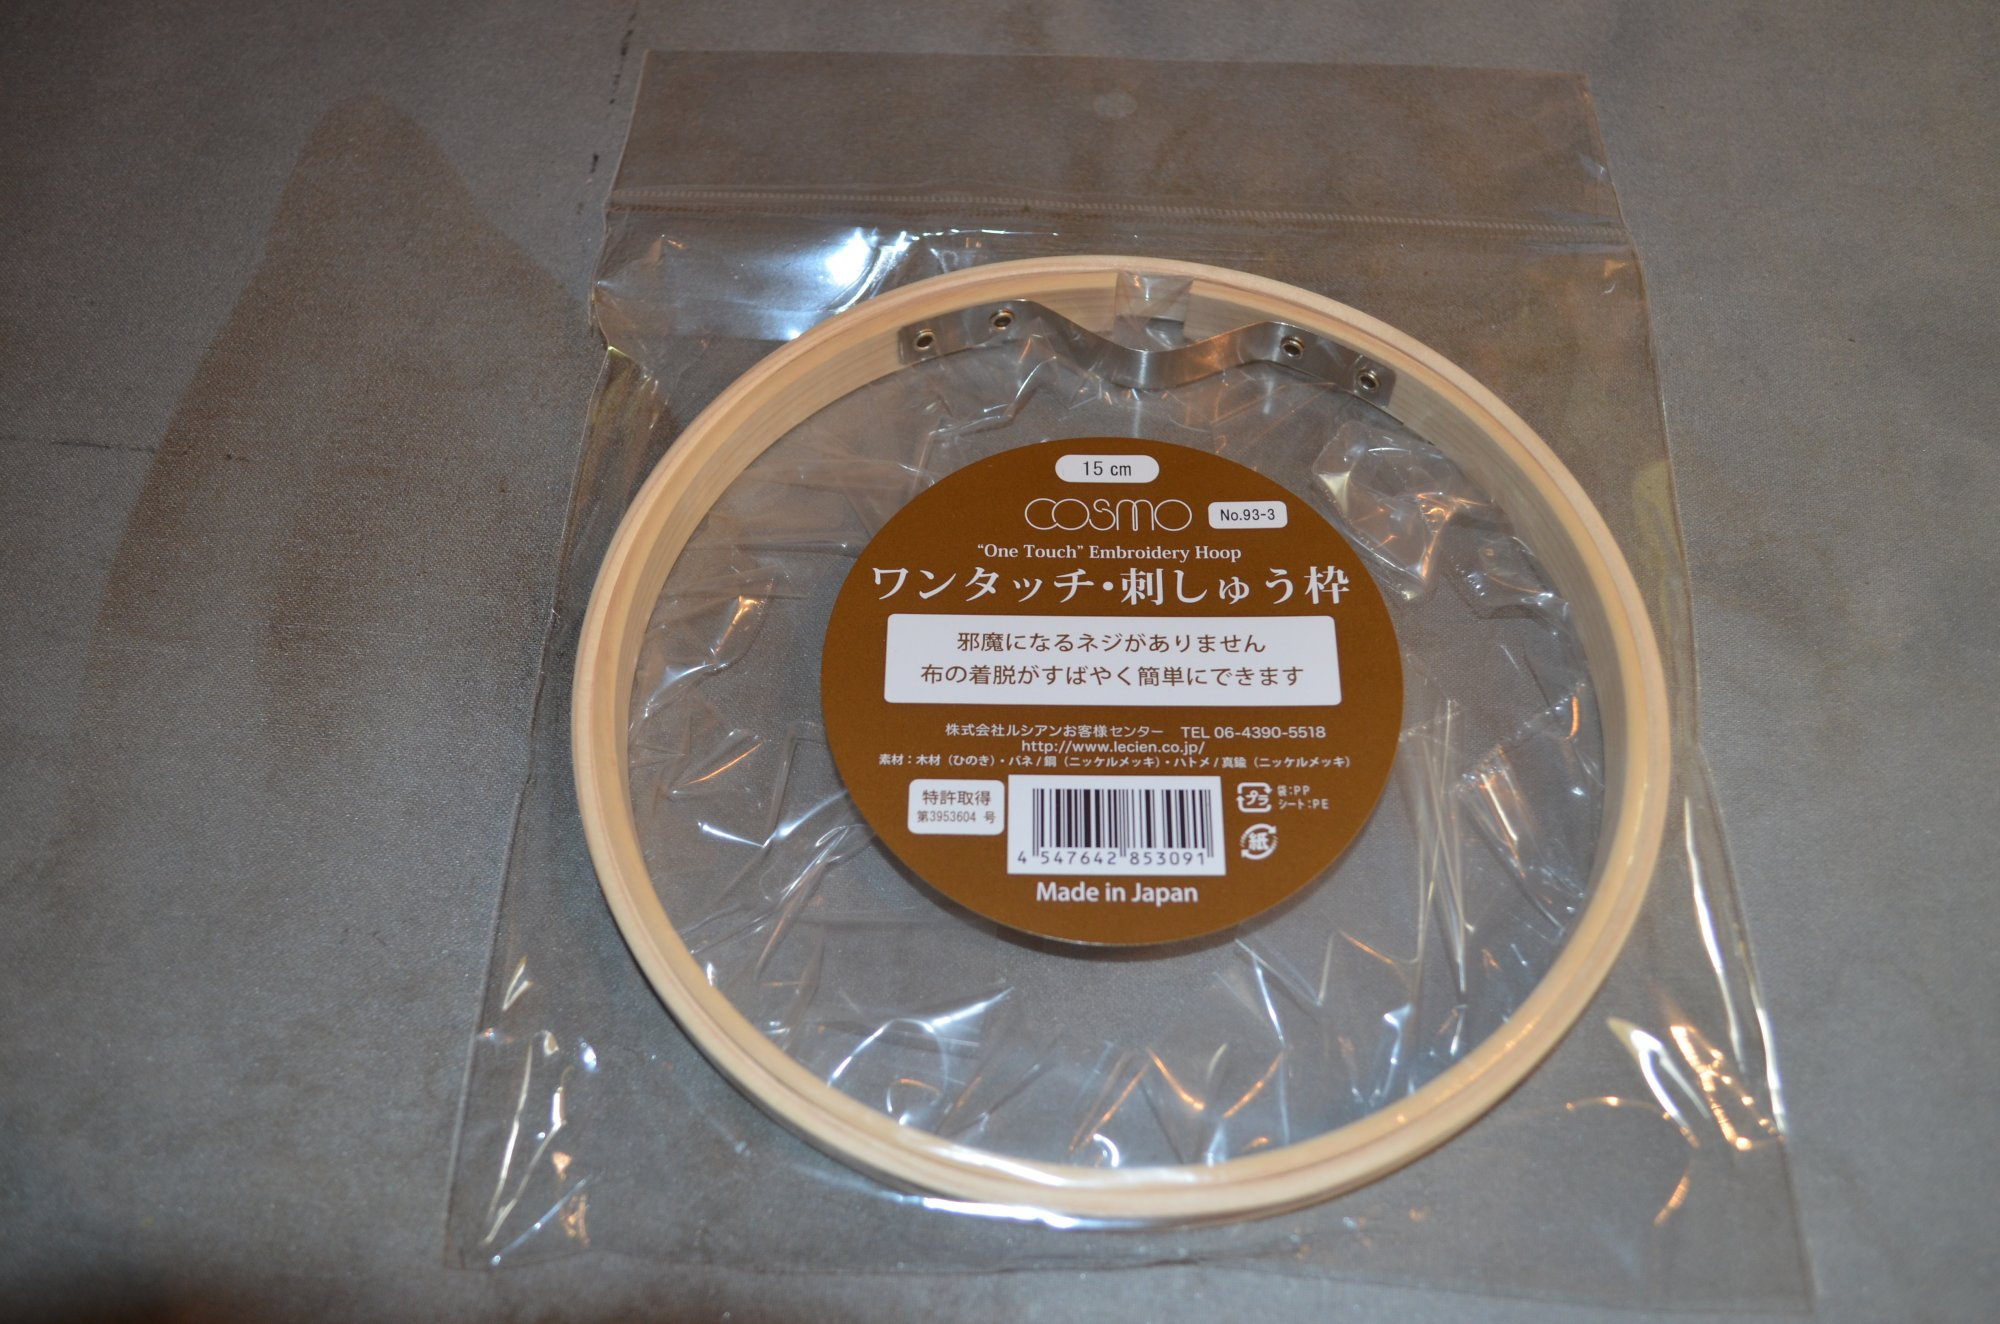 Cosmo Embroidery Hoop 6 Round Wood LEN93-3